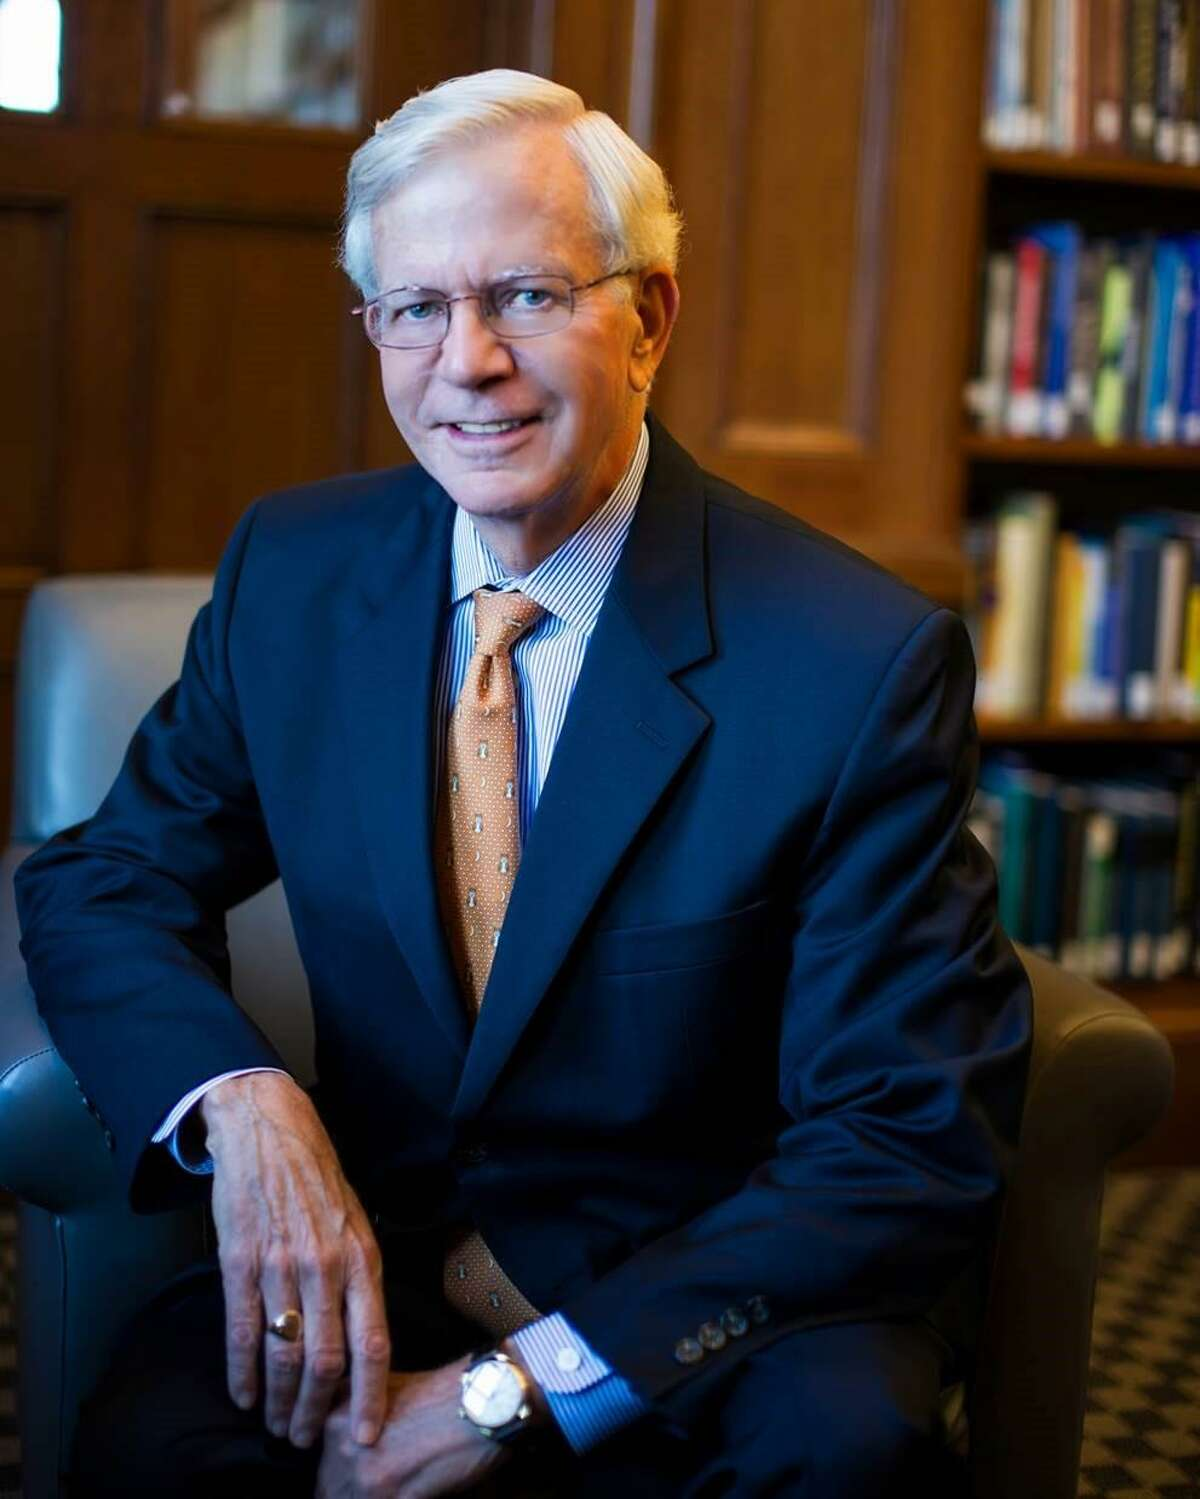 William M. Arnold, professor in the practice of energy management at Rice University?'s Jones Graduate School of Business and a former energy banker and Shell executive.